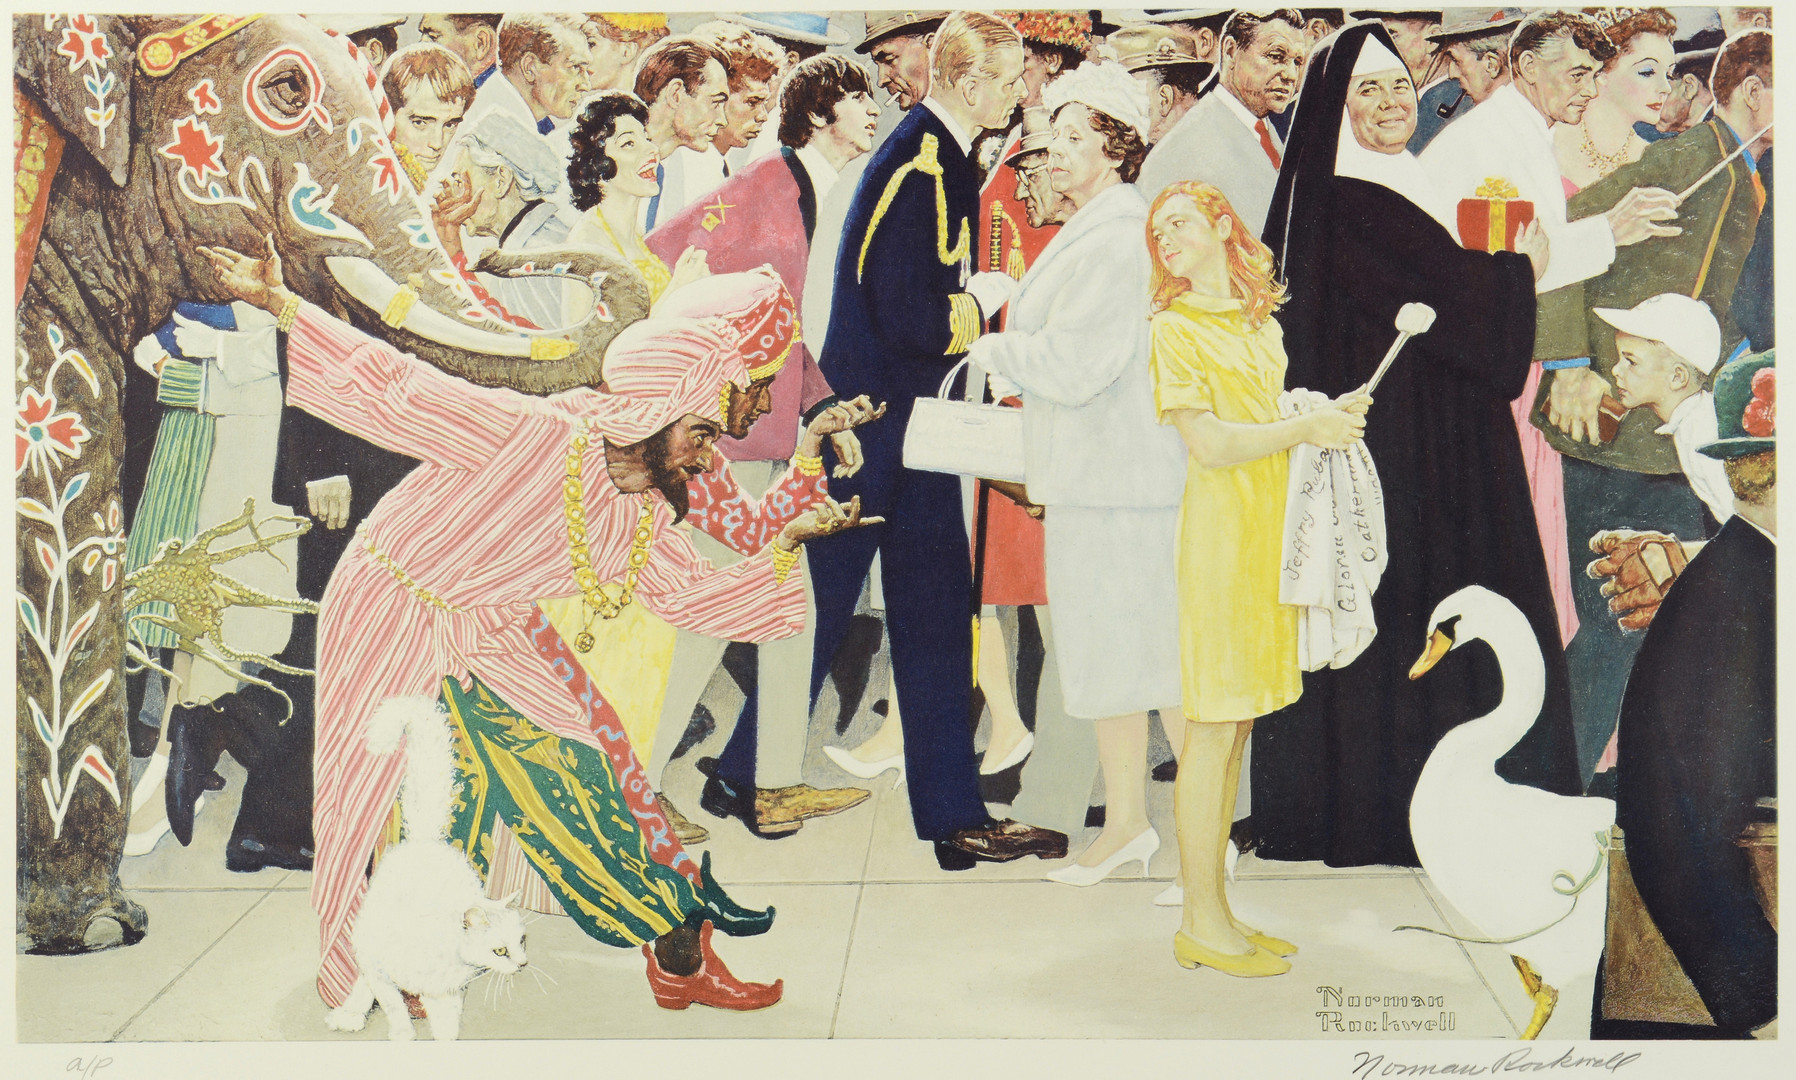 Lot 205: Rockwell Lithograph, Saturday People